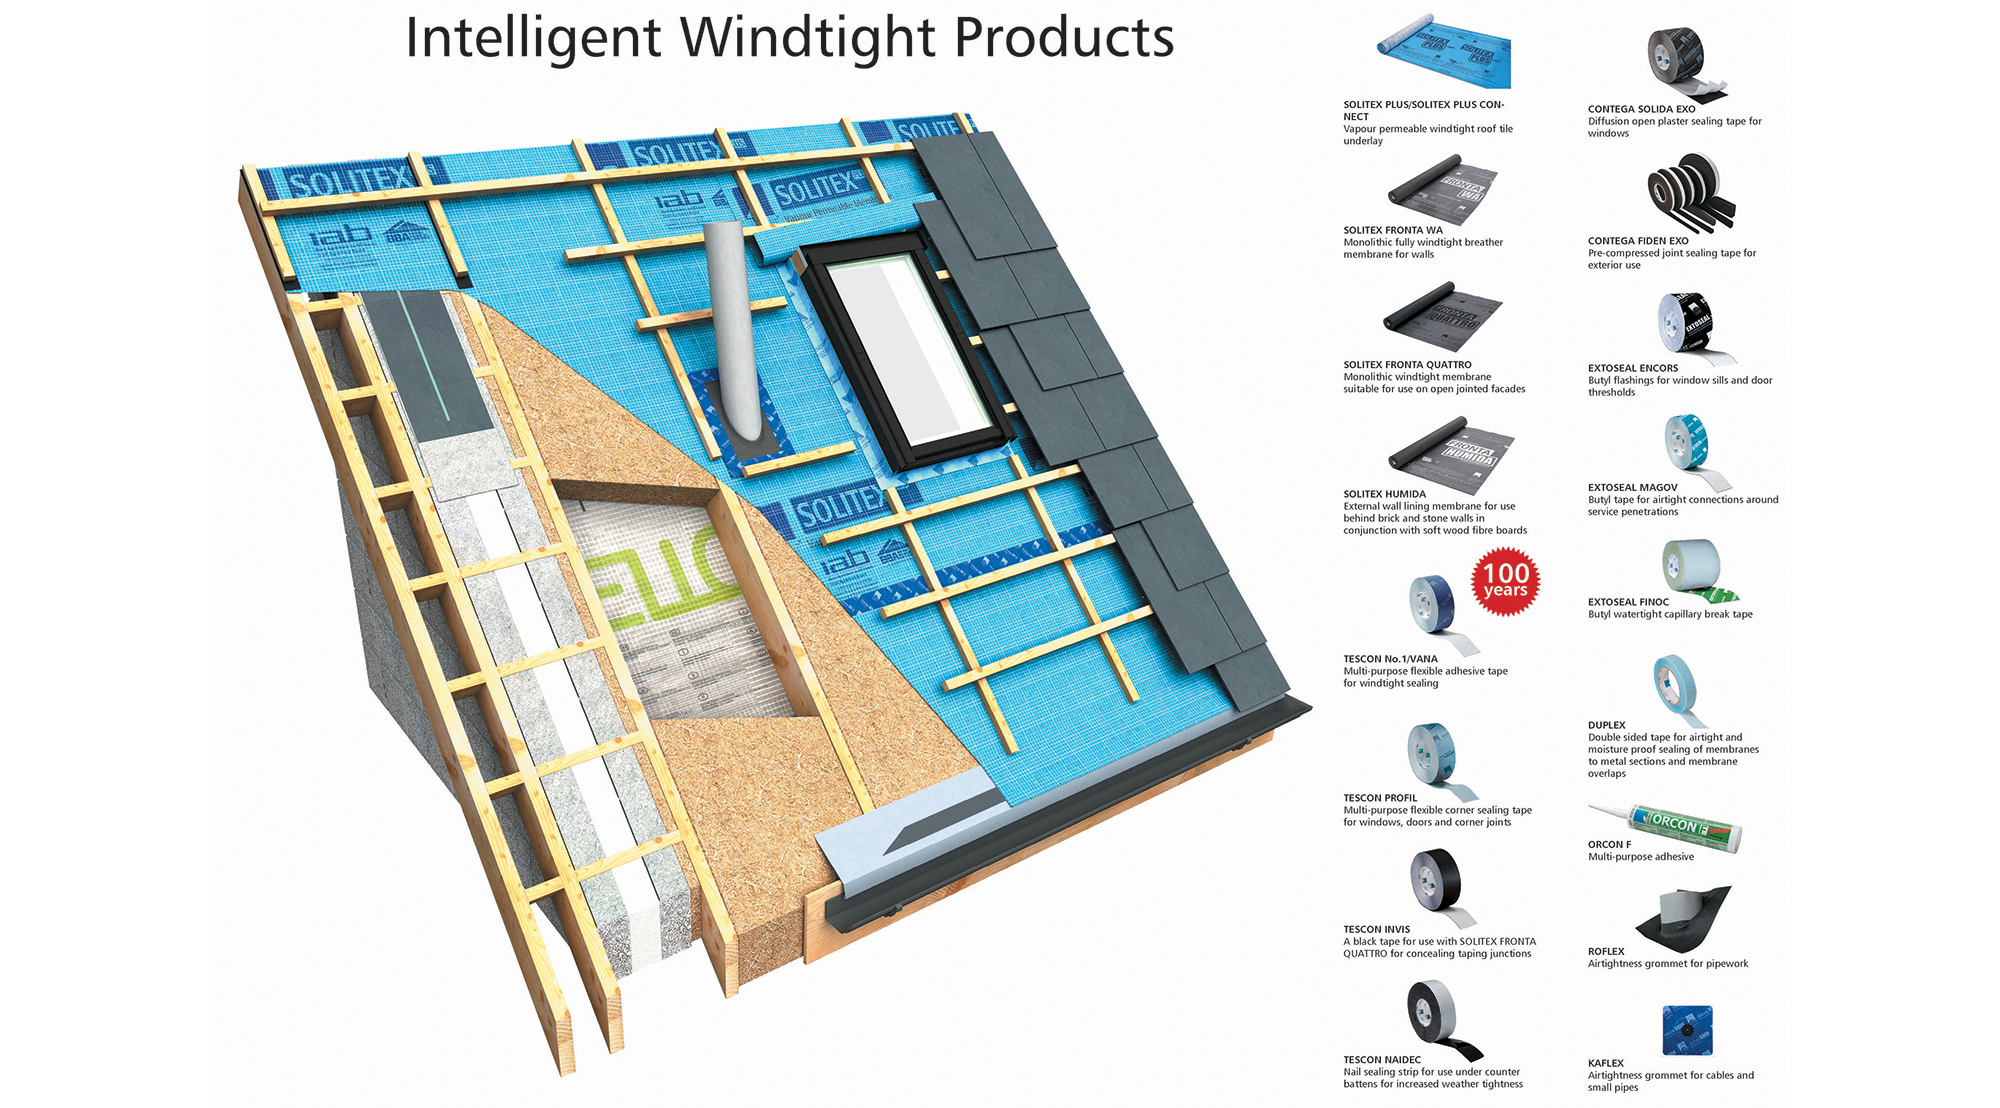 pro clima intelligent windtight products